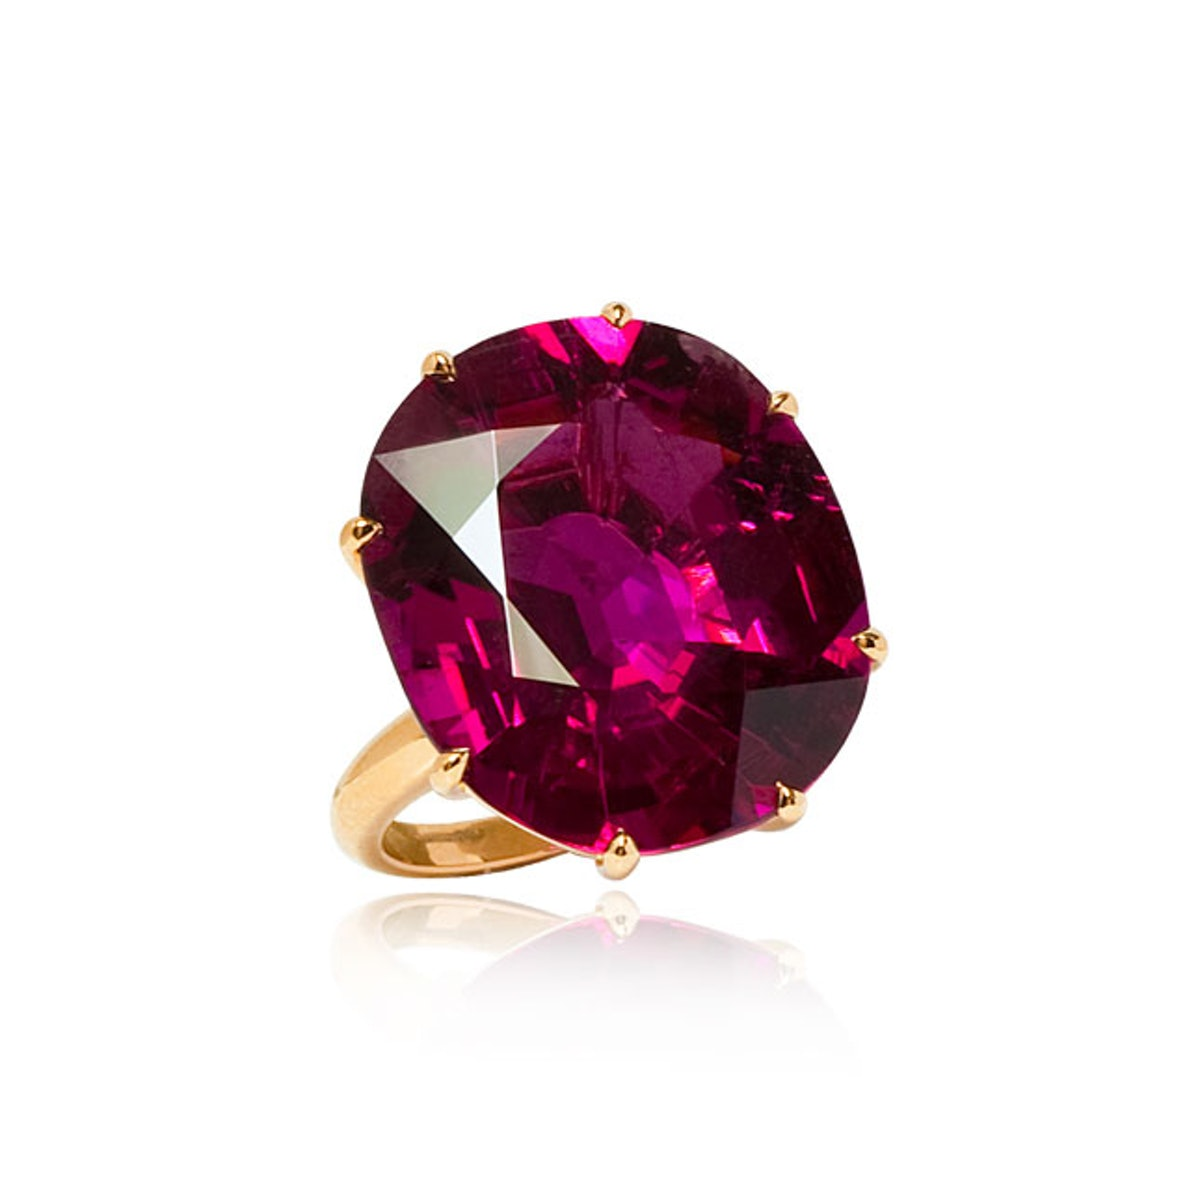 Stephen-Russell-29.91-carat-Rubelite-Ring,-Price-Upon-Request,-at-www.StephenRussell.com